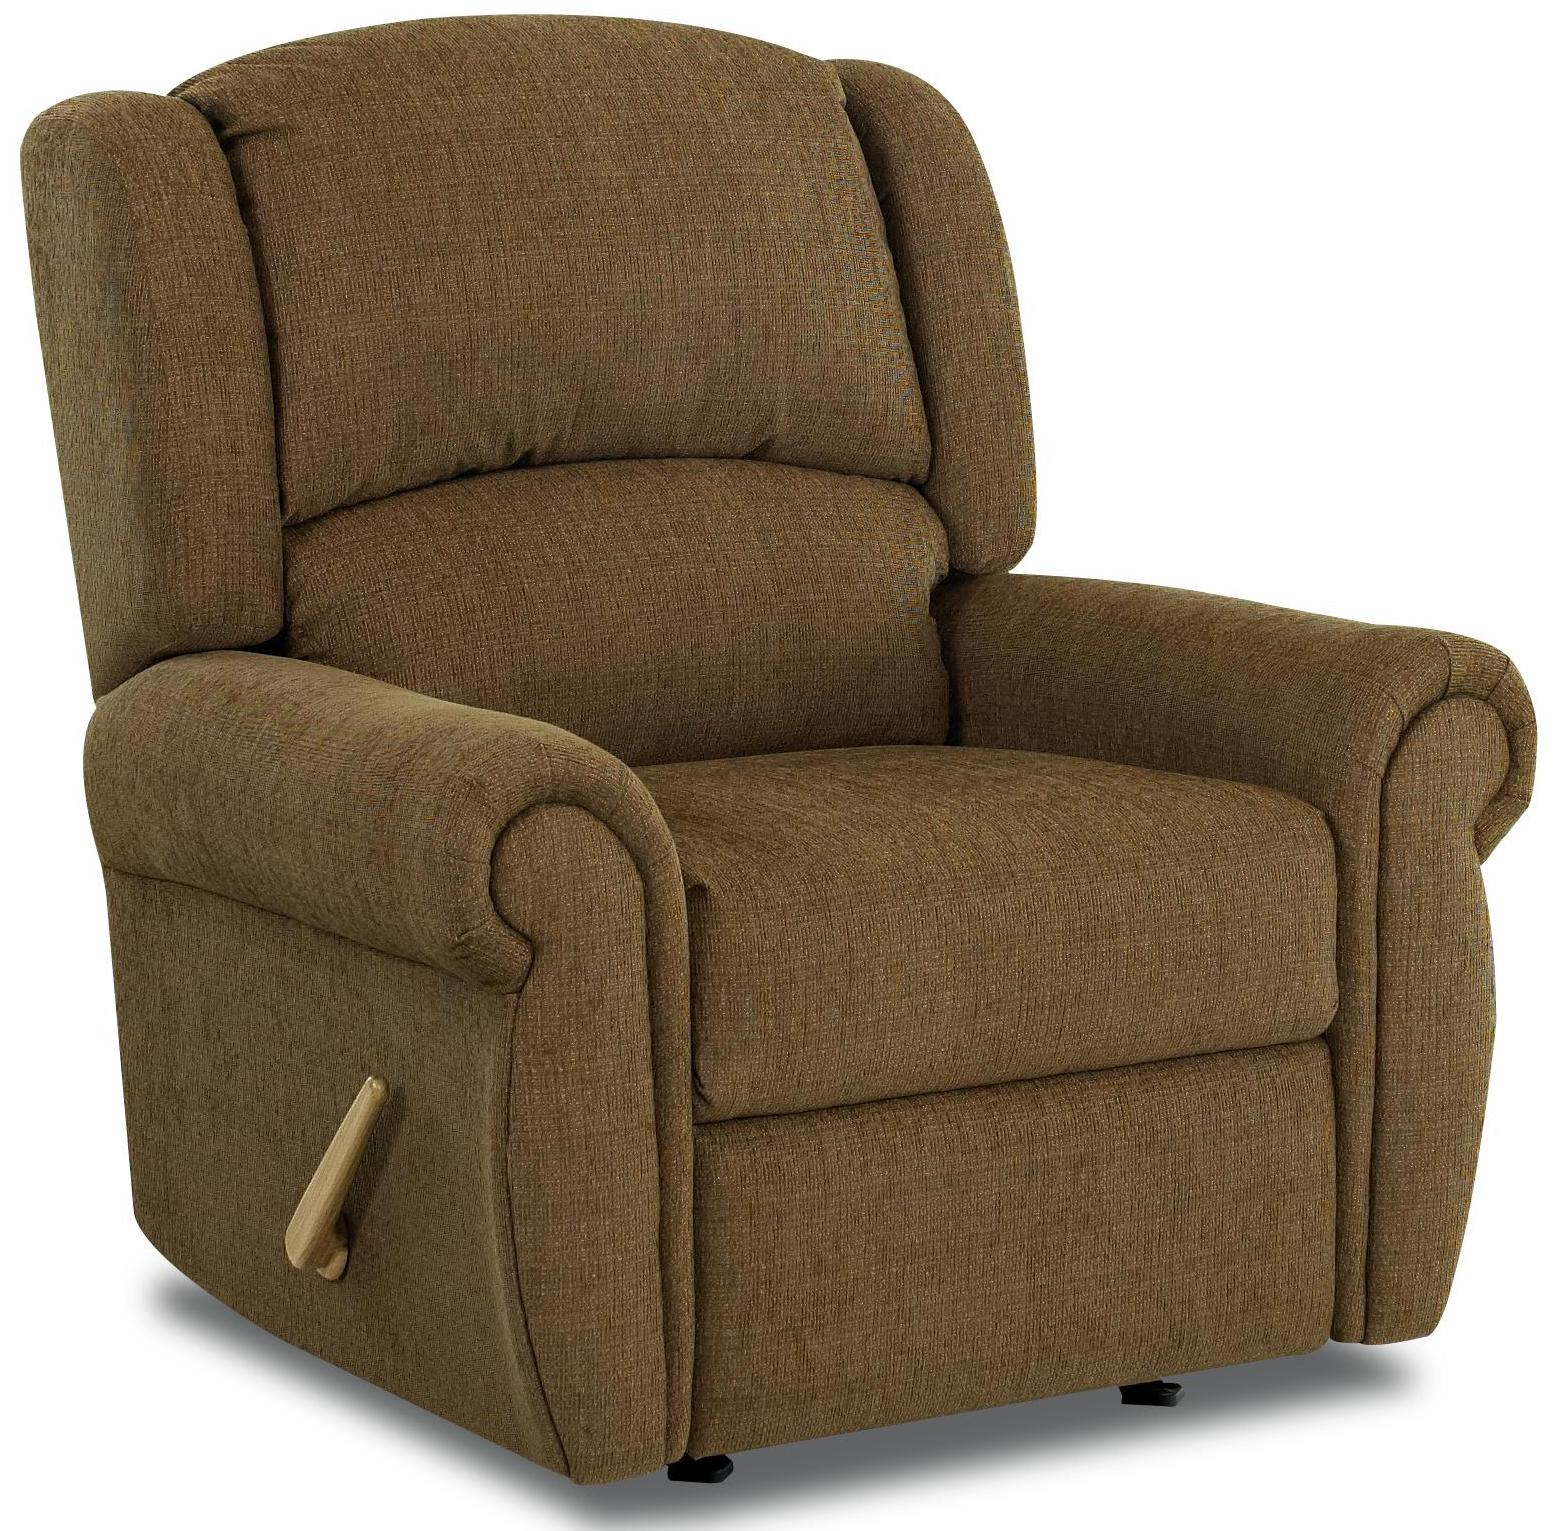 Traditional Glider Recliner With Winged Pub Back And Rolled Arms By Klaussner